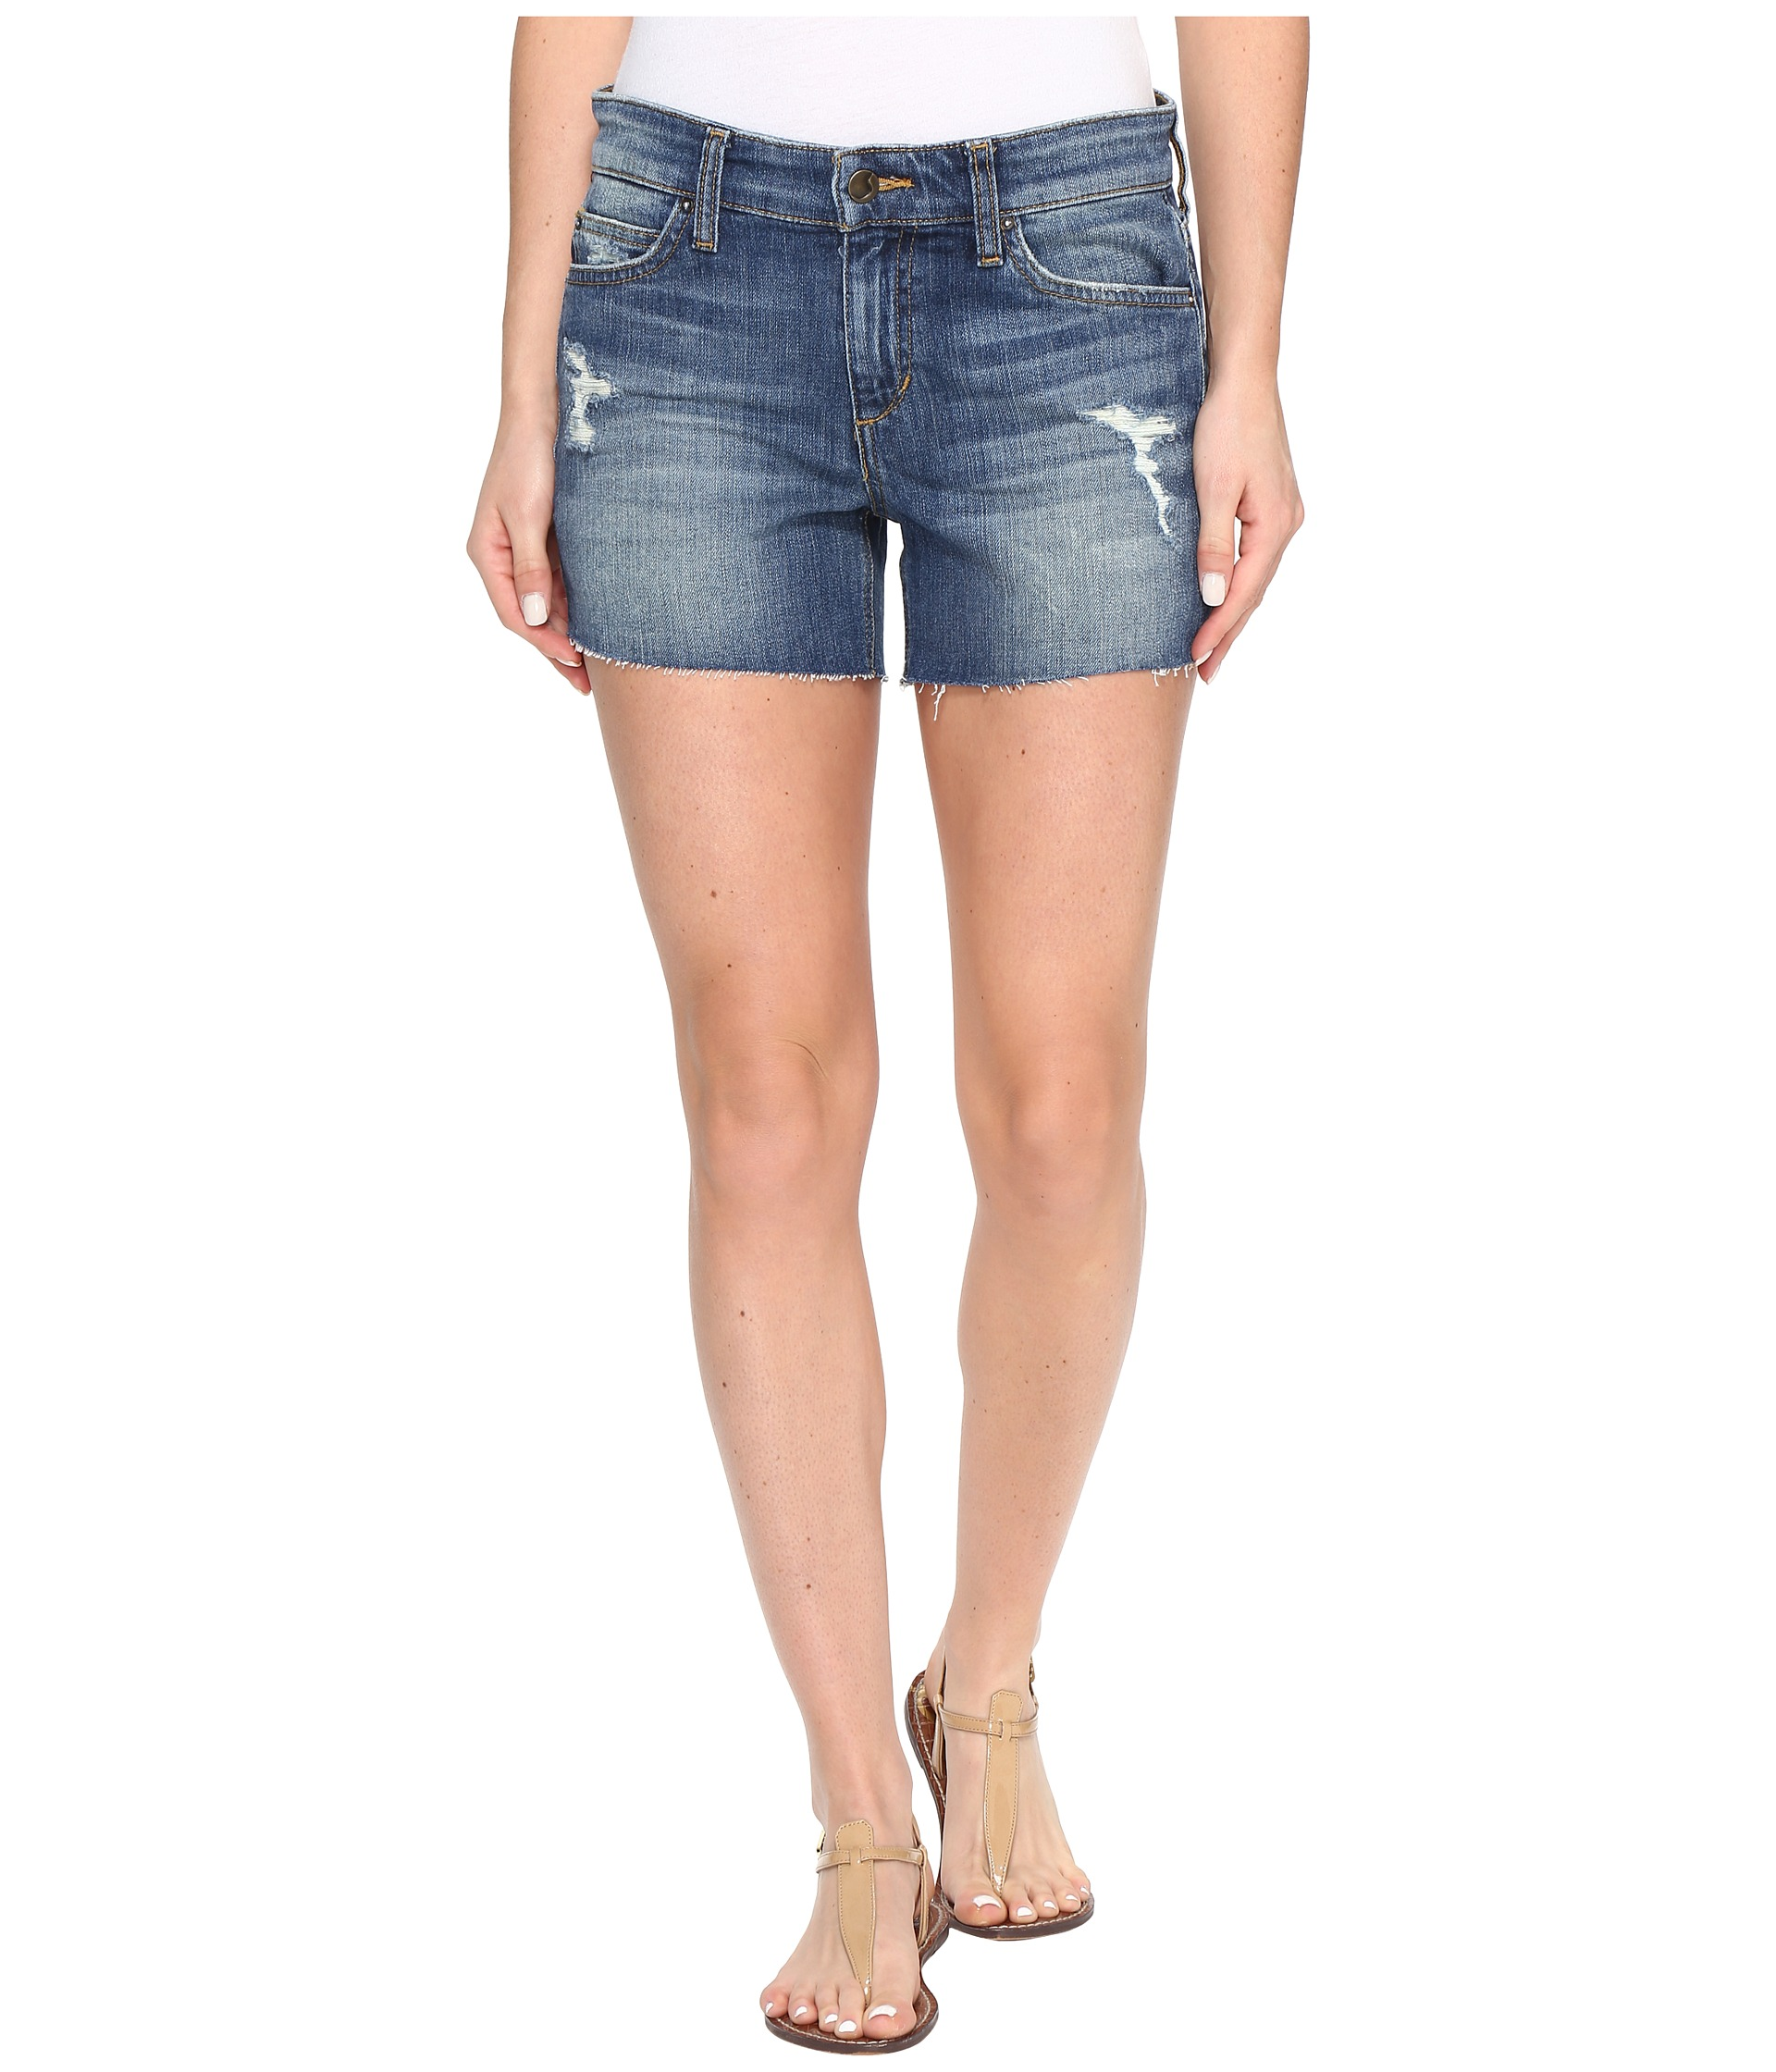 "Joe's Jeans Ozzie 4"" Cut Off Shorts in Rami at Zappos.com"